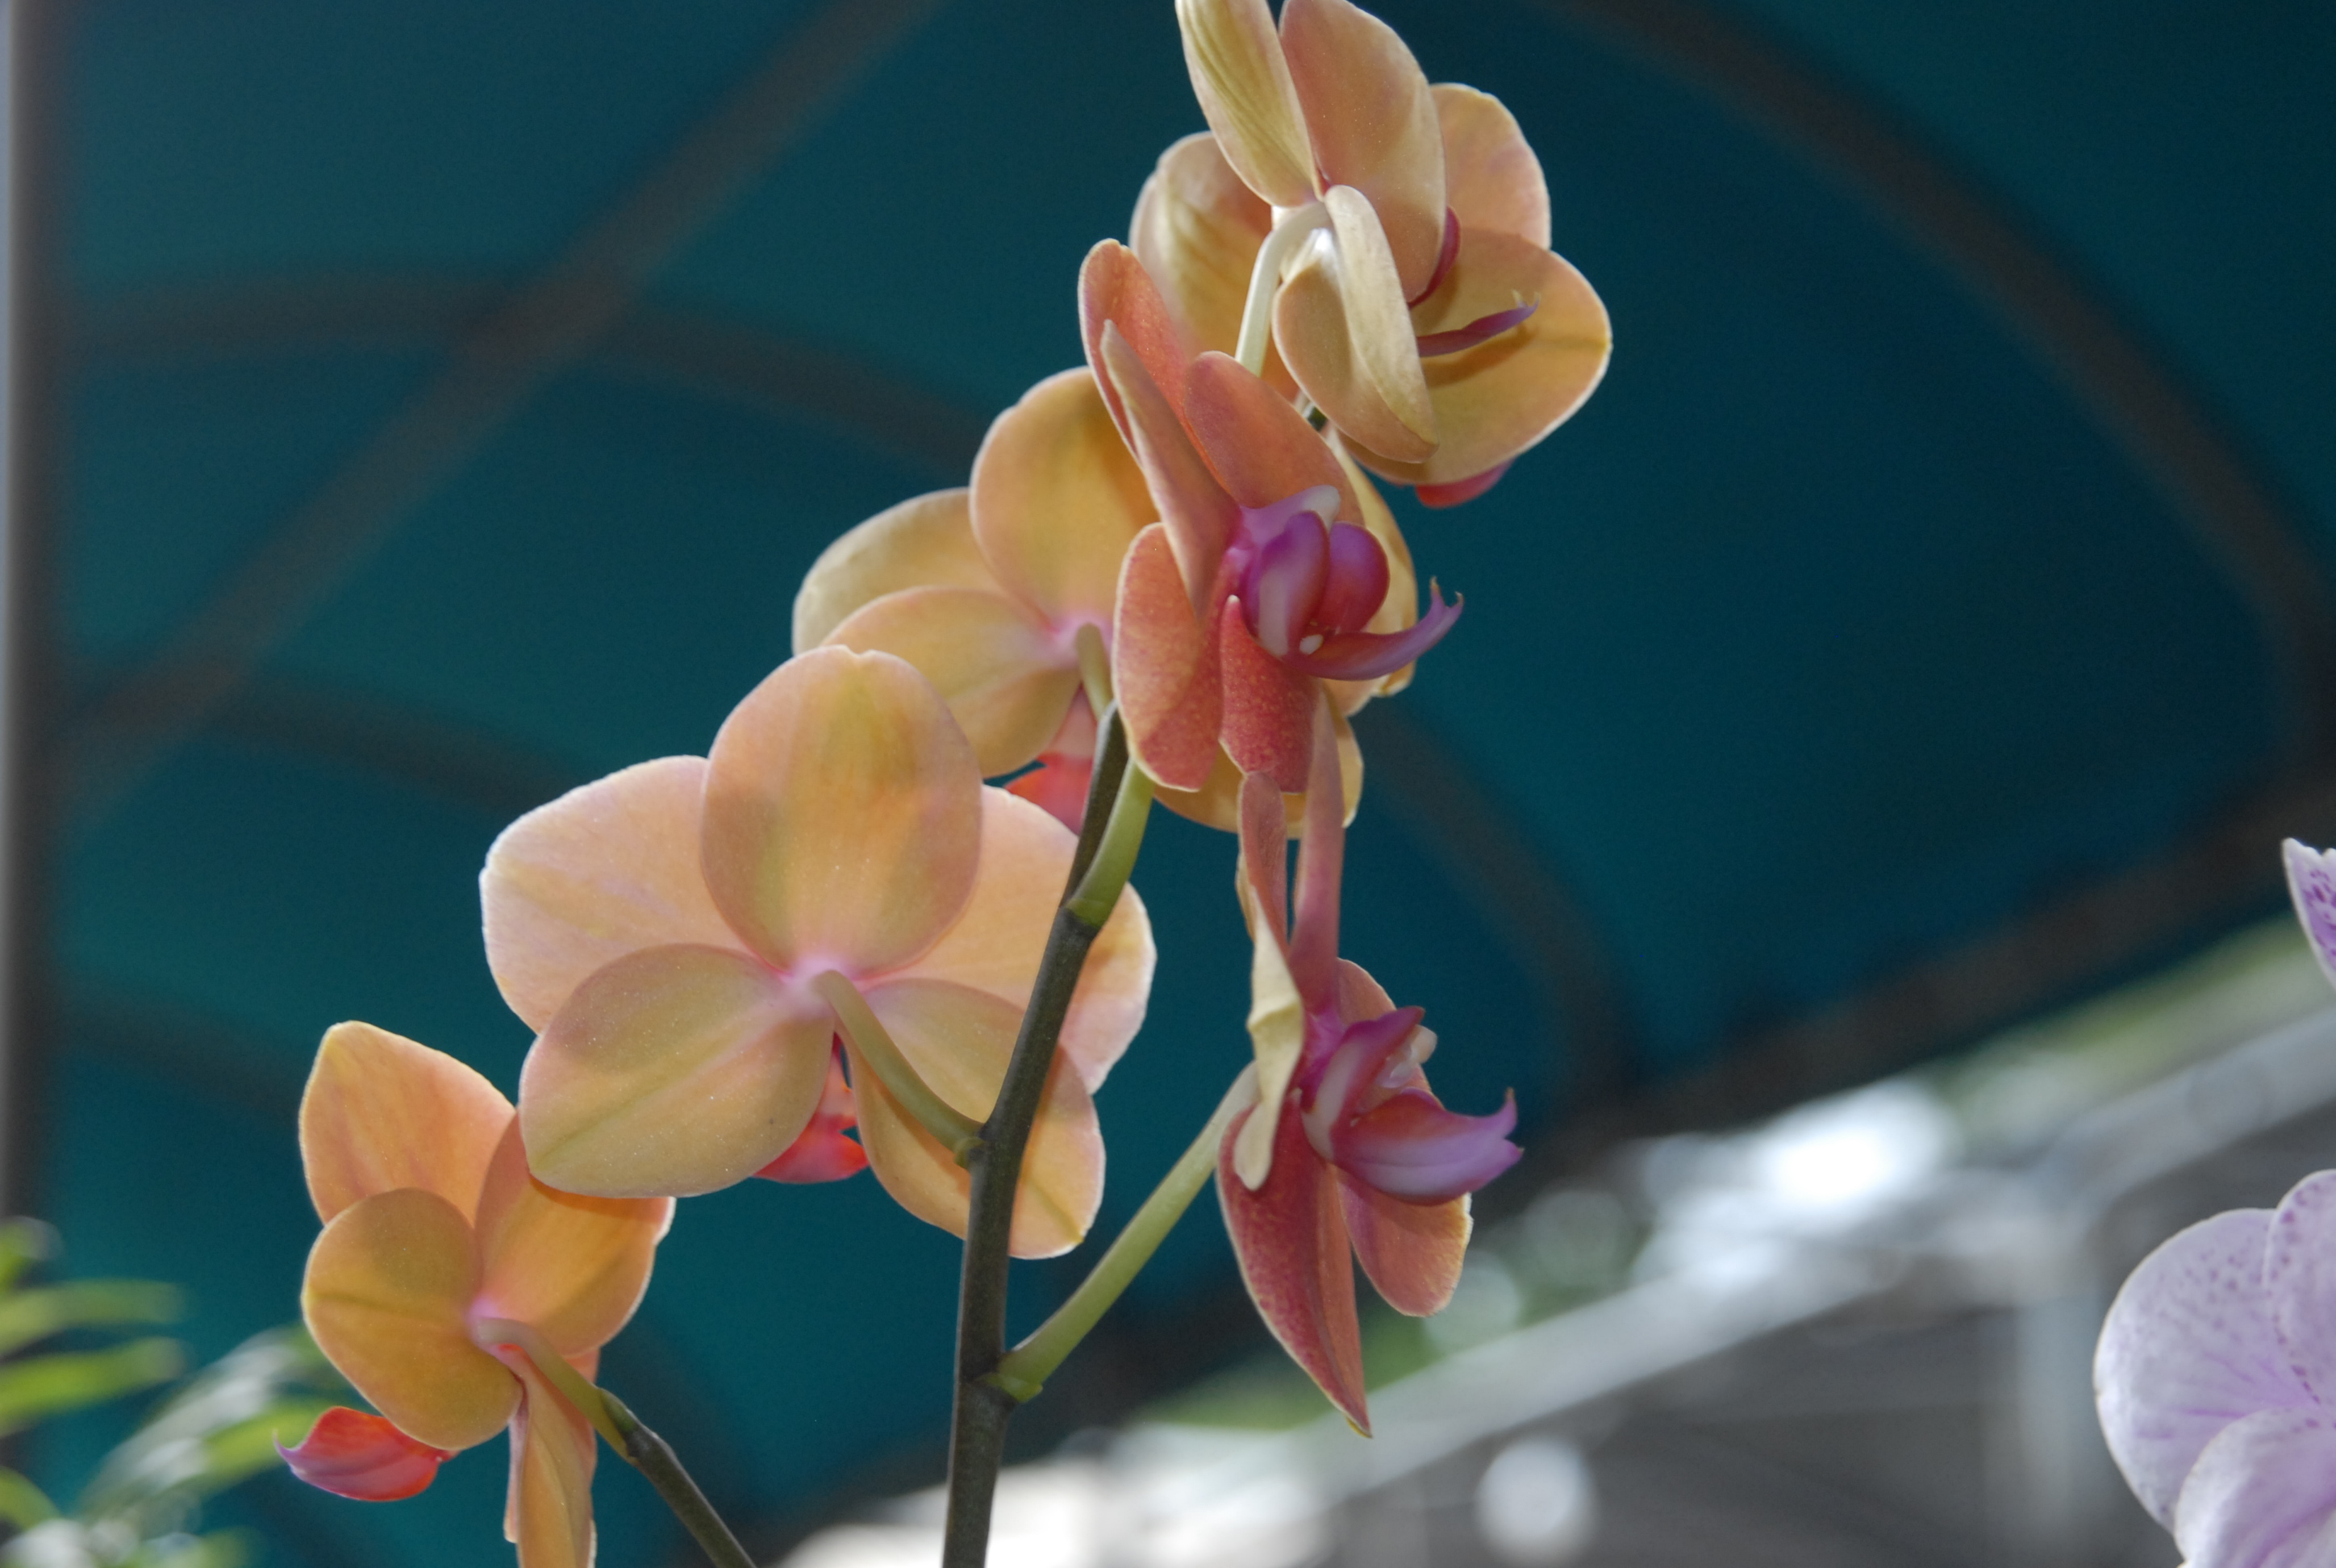 Orchids need proper care